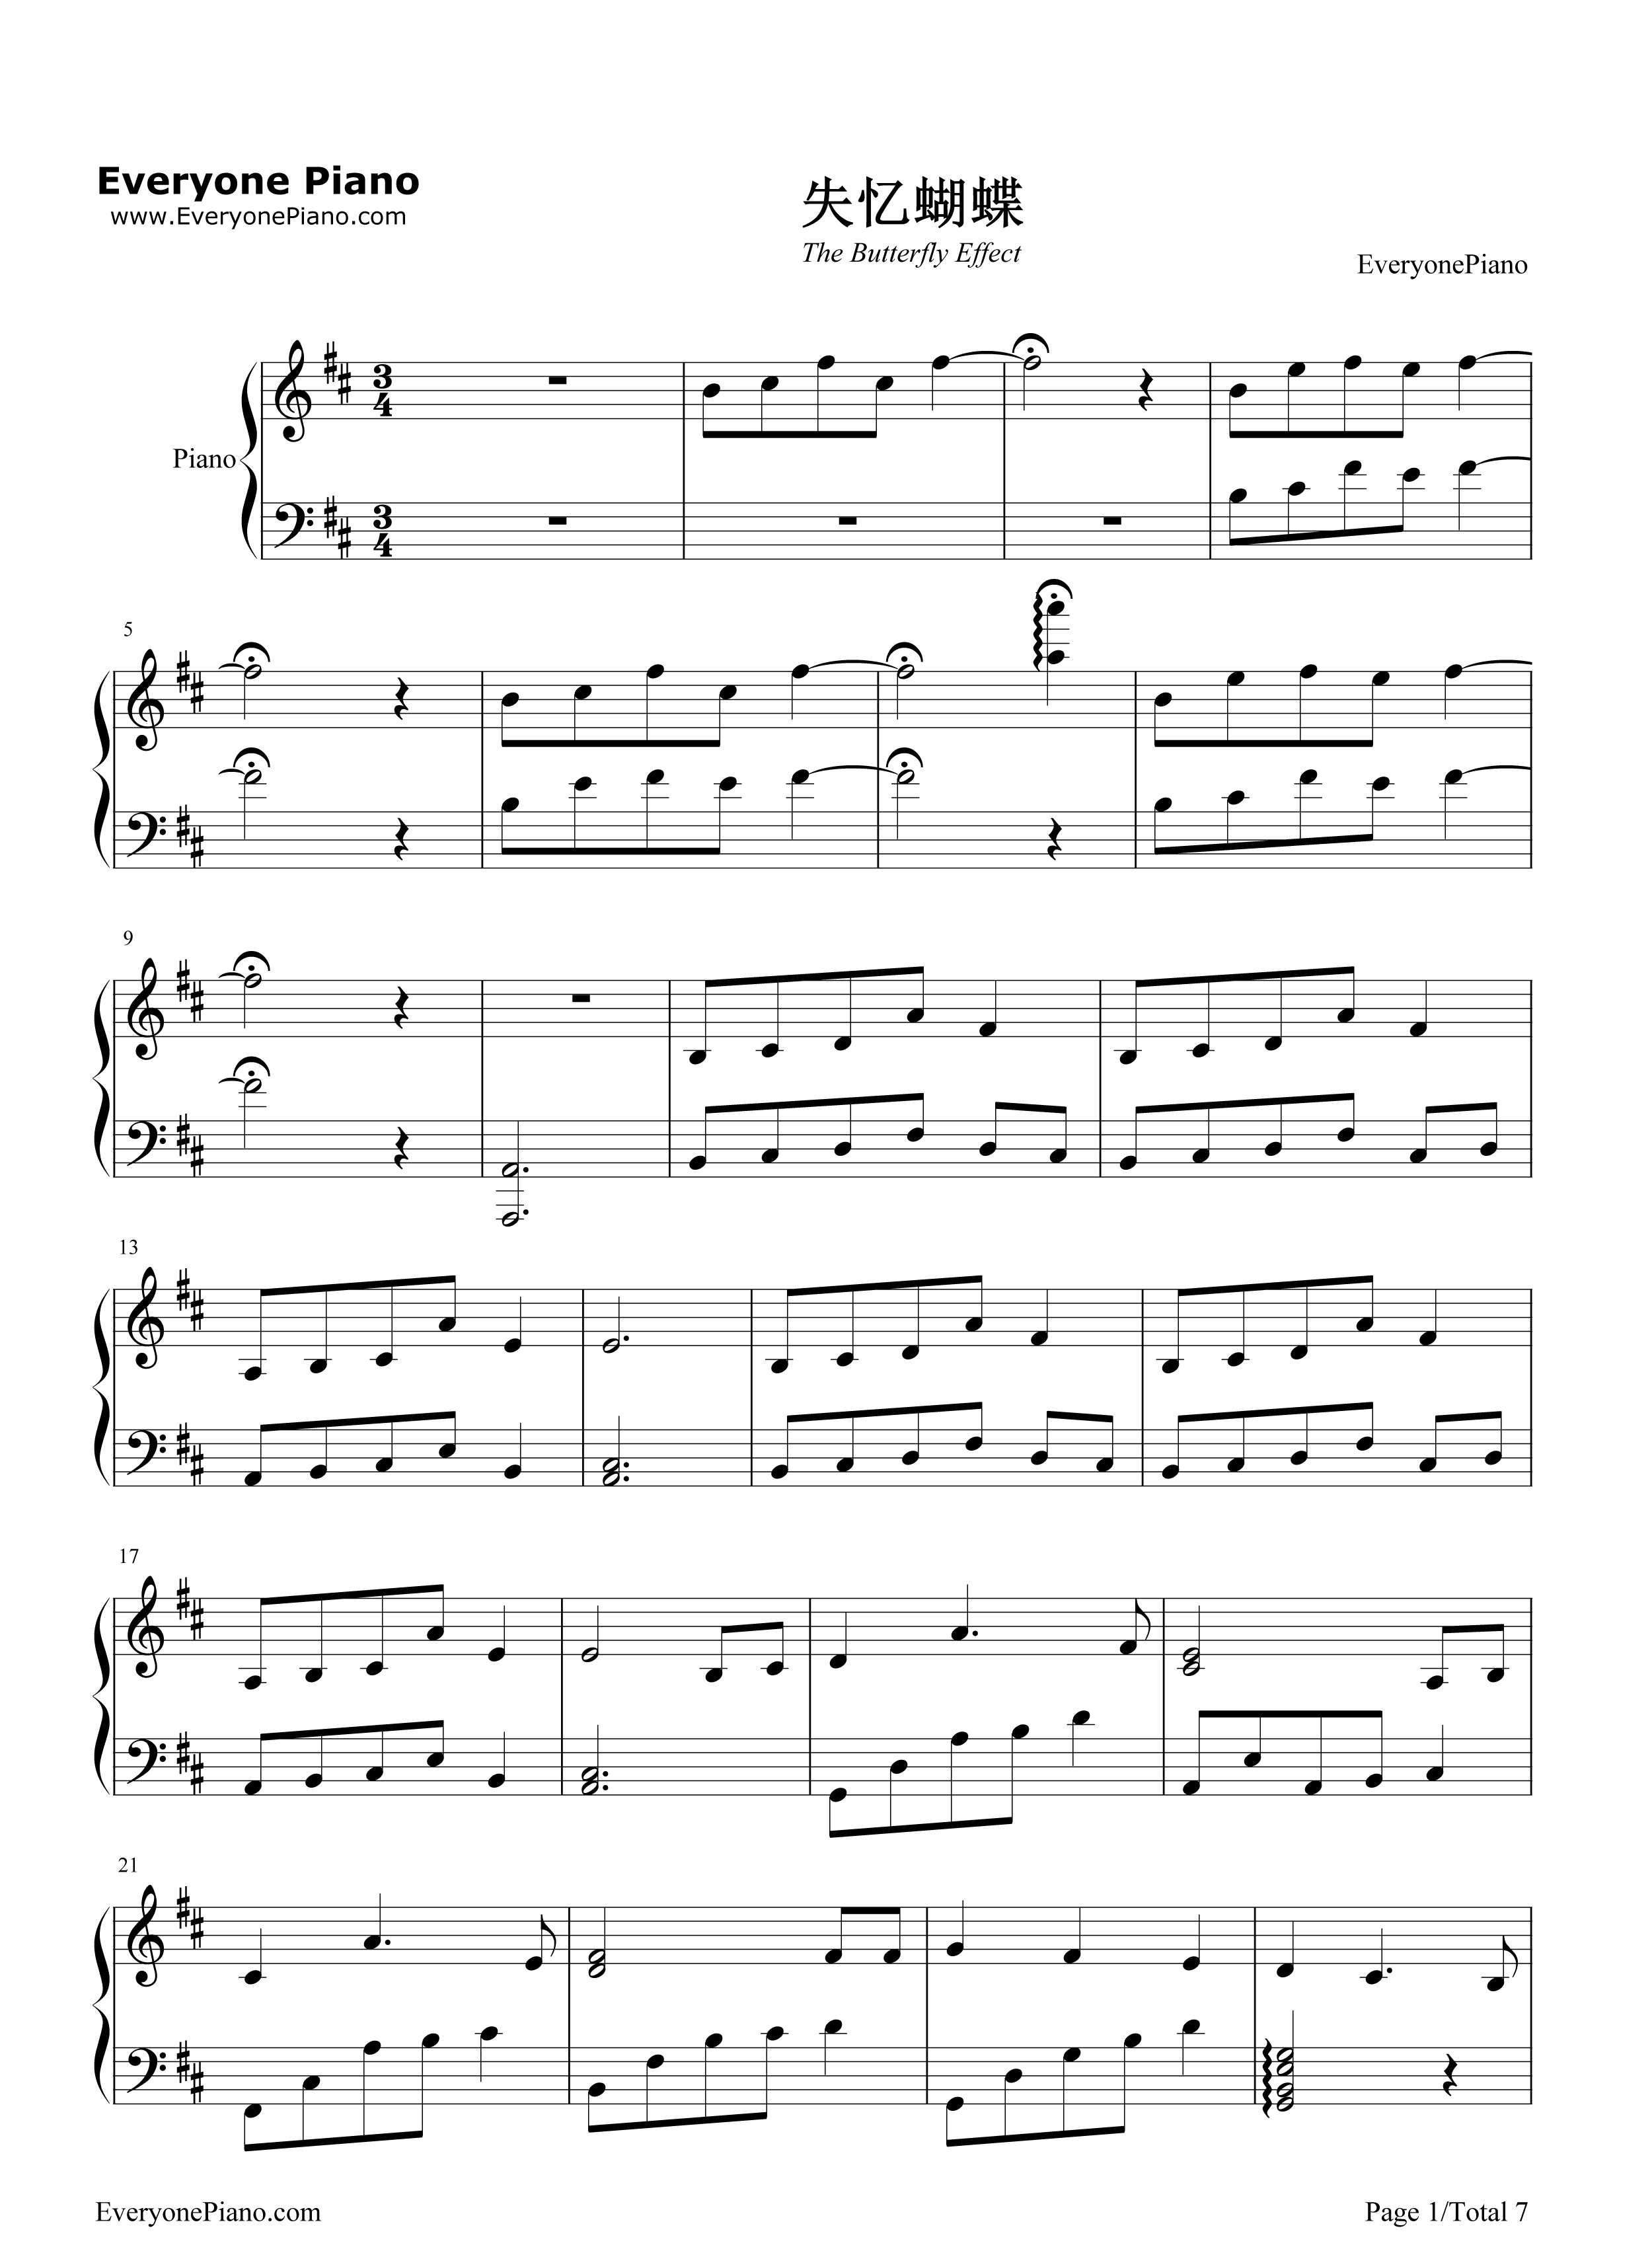 The butterfly effect eason chan stave preview 1 free piano sheet listen now print sheet the butterfly effect eason chan stave preview 1 hexwebz Gallery